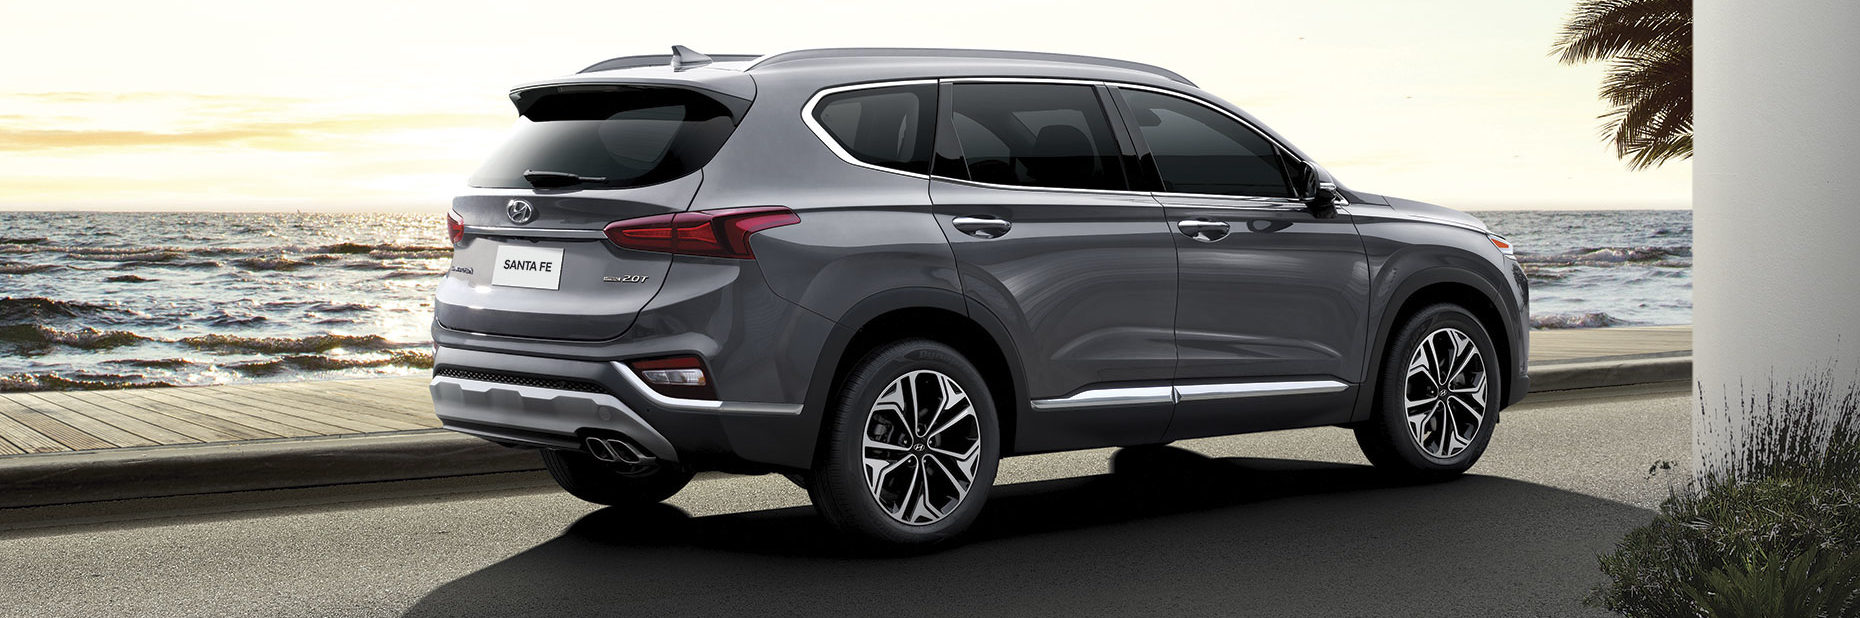 Grey 2019 Hyundai Santa Fe by the waterside as waves cascade and the sun sets